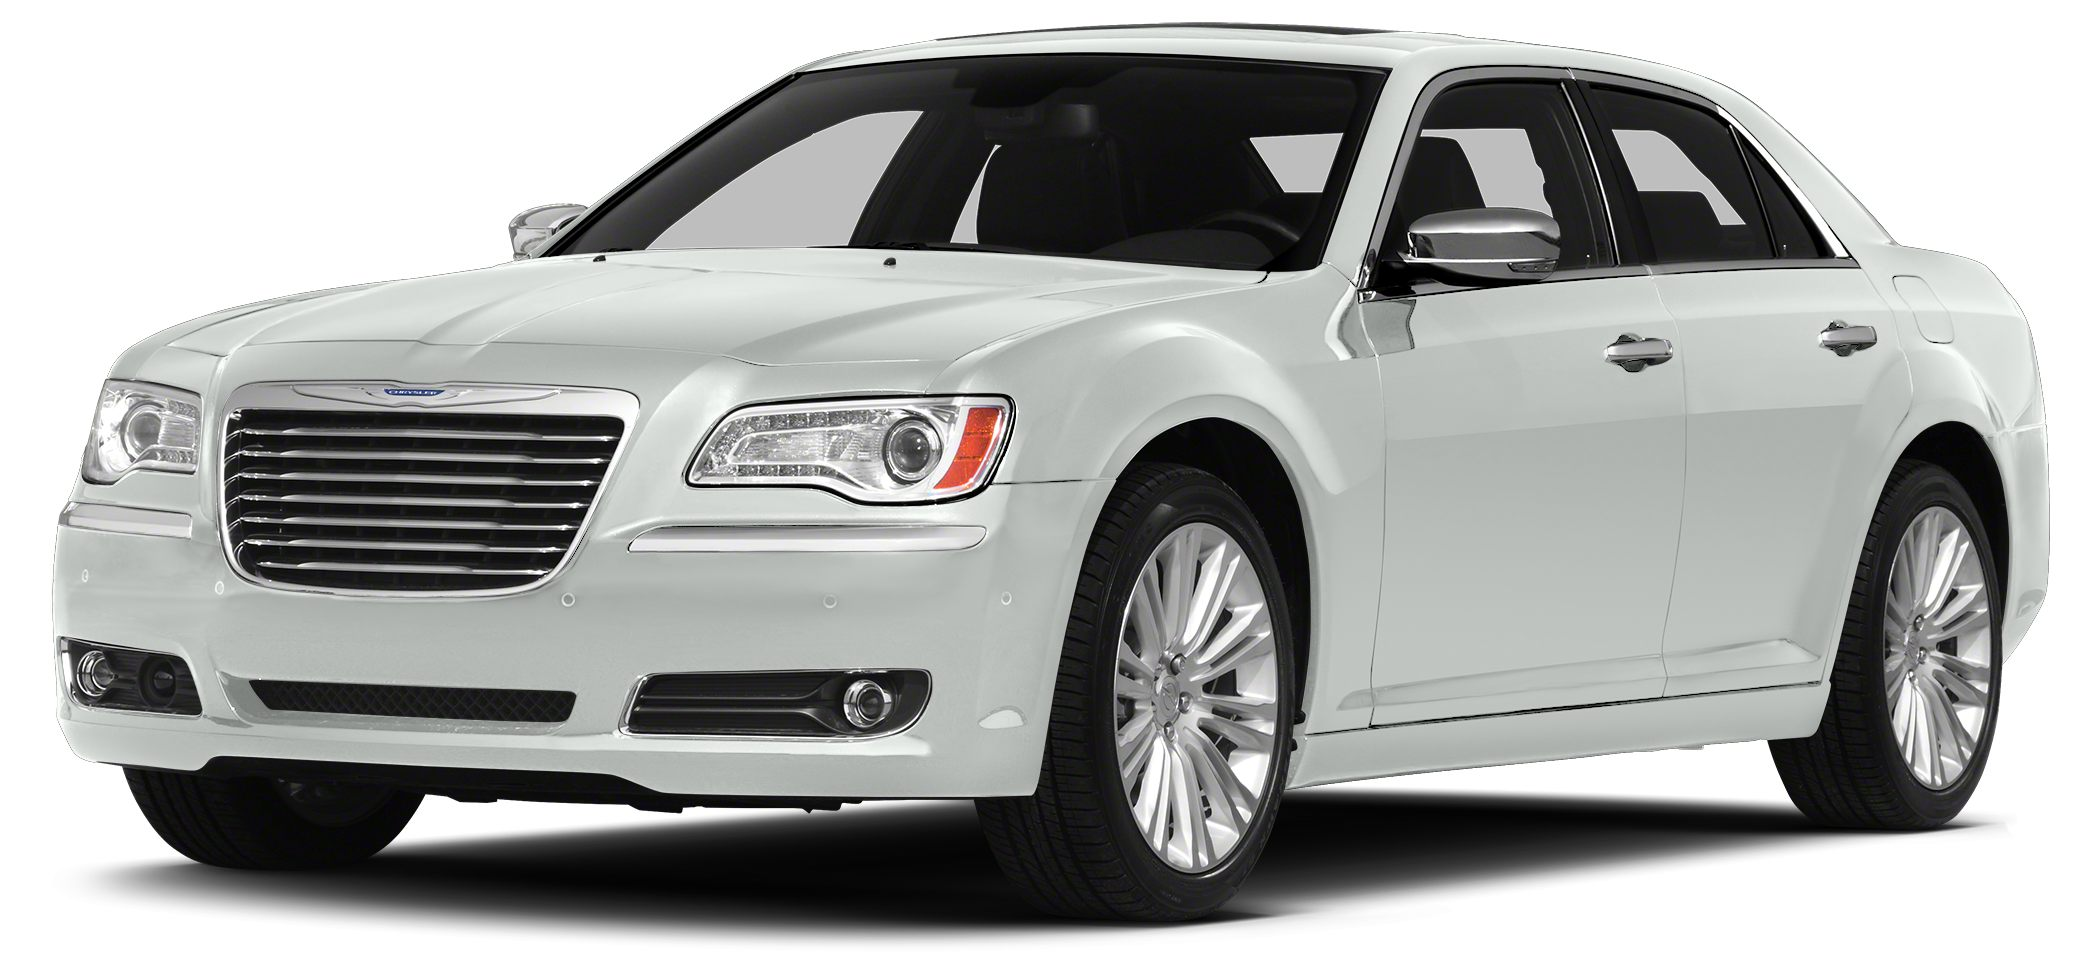 2014 Chrysler 300 Base Beautiful 1 Owner 2014 Chrysler 300 AWD NAVIGATIONHEATED LEATHER SEATS